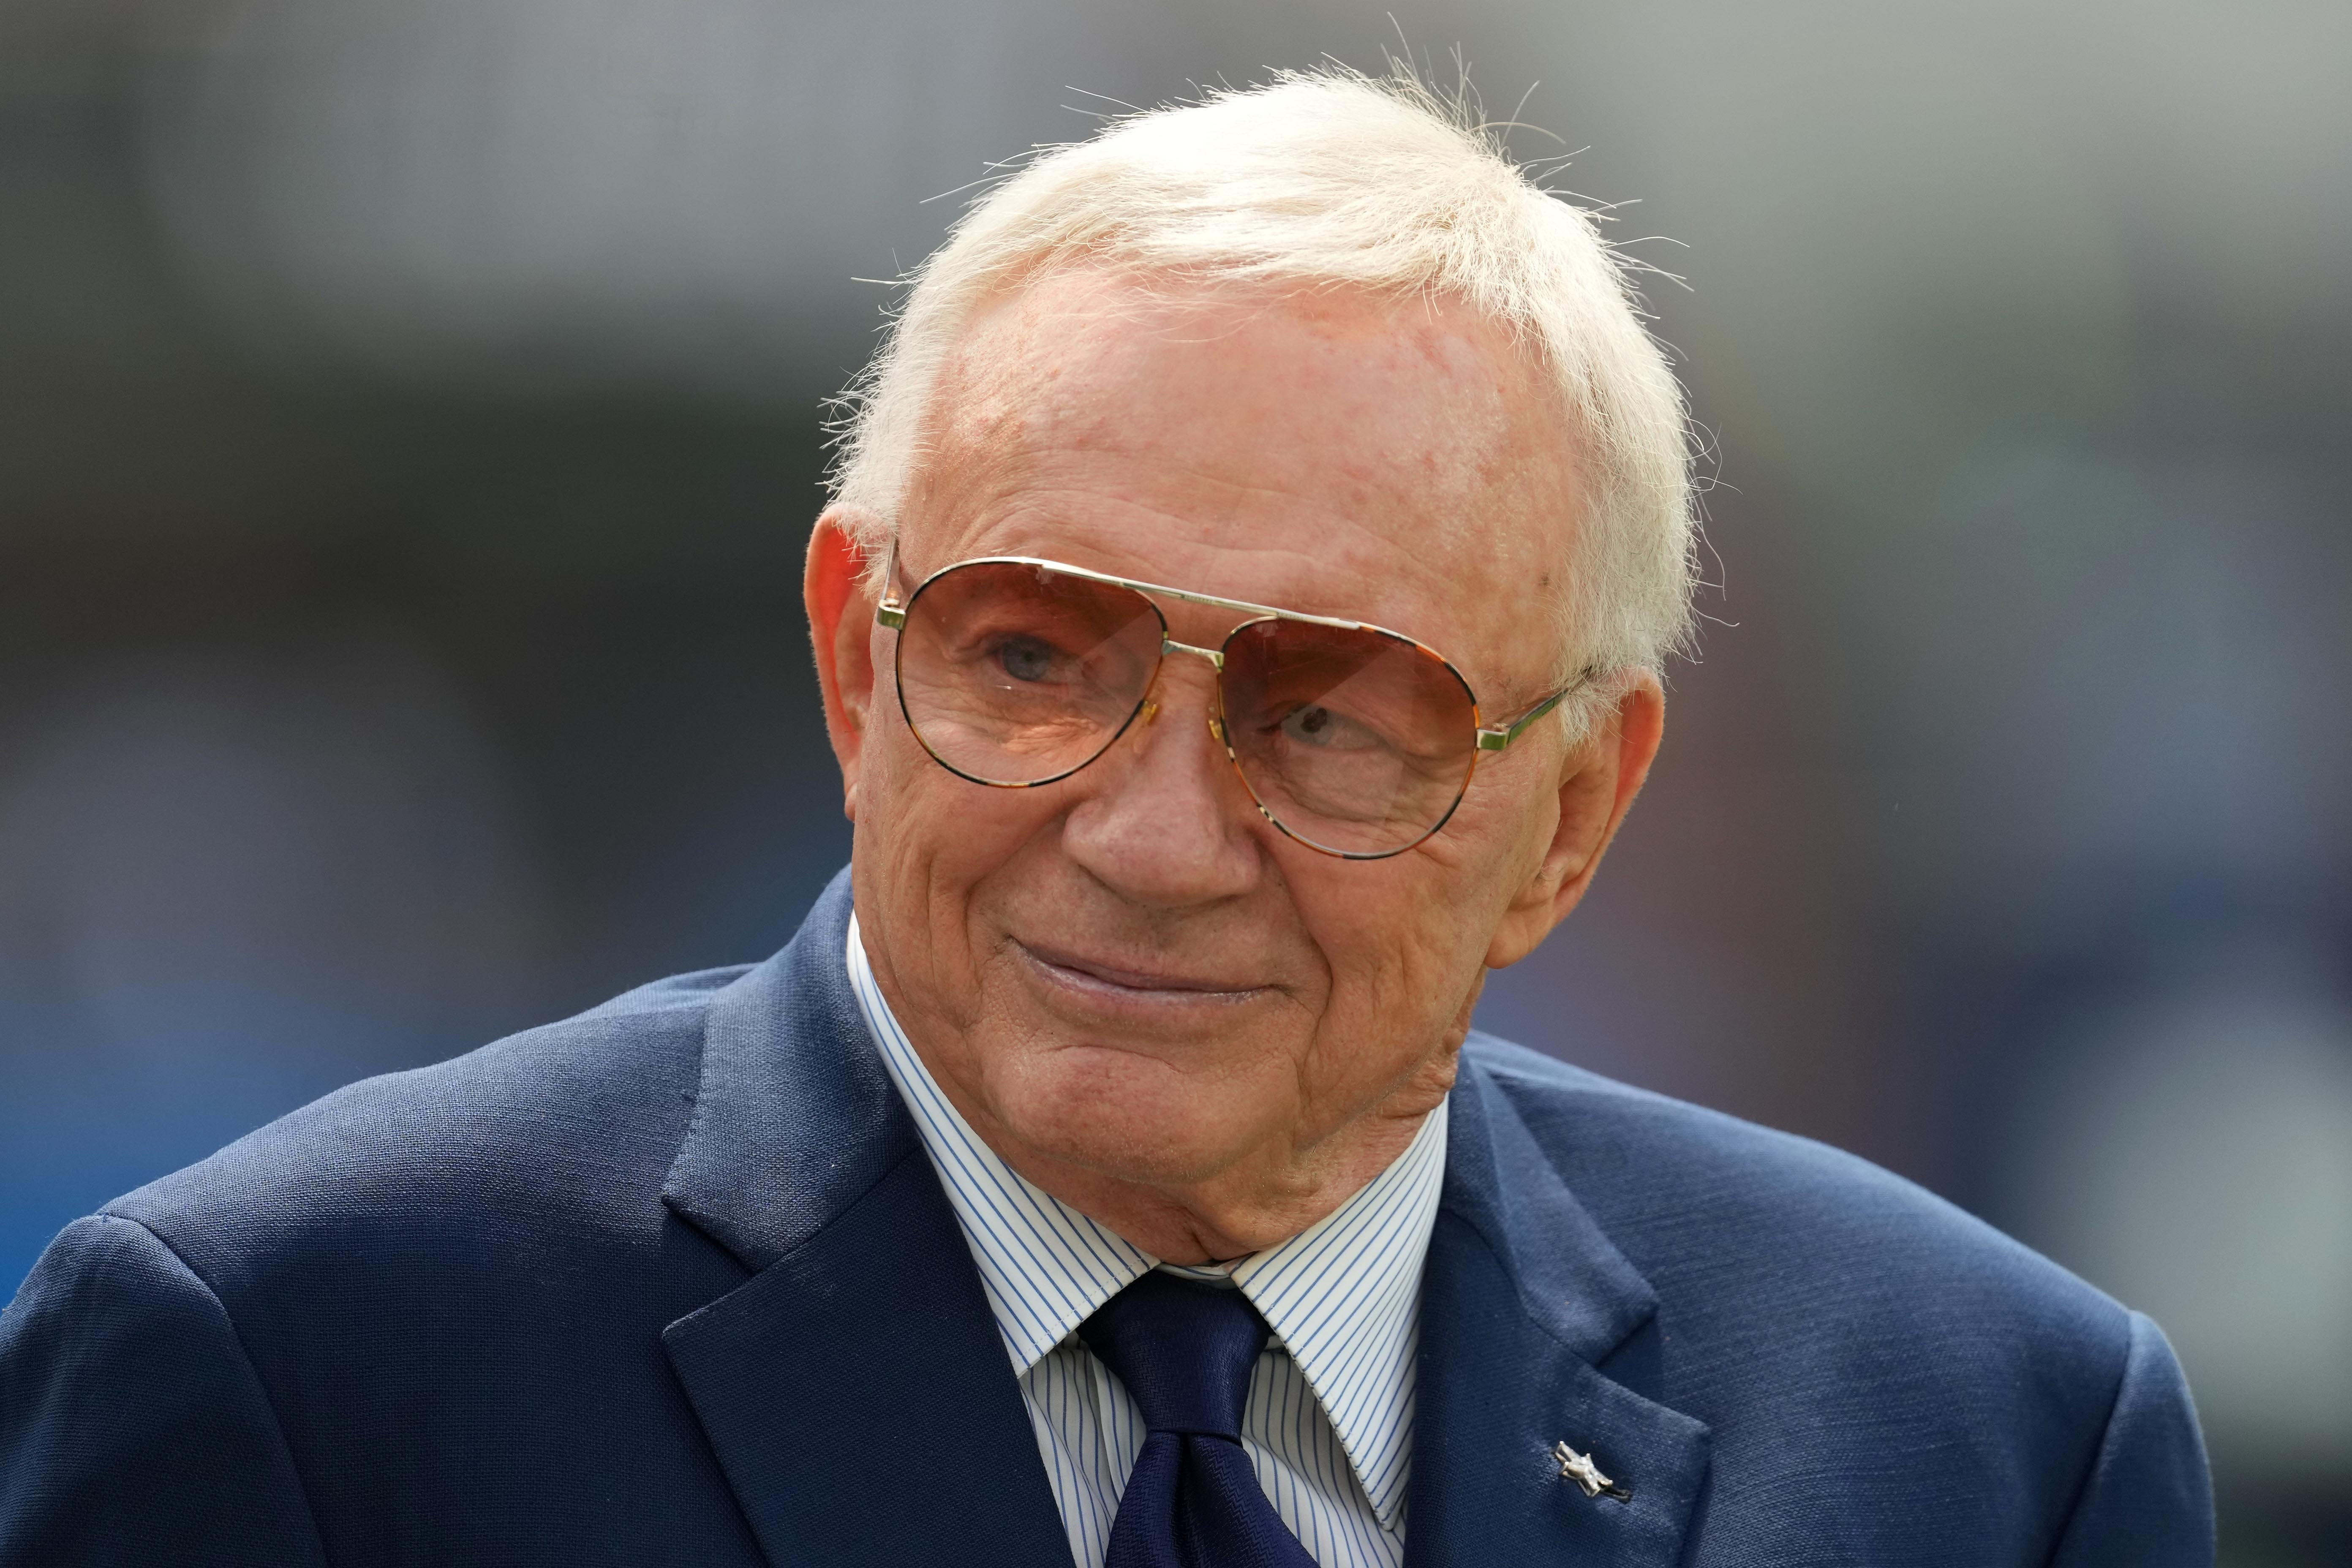 Cowboys owner Jerry Jones responds to Jon Gruden s resignation, leaked email comments